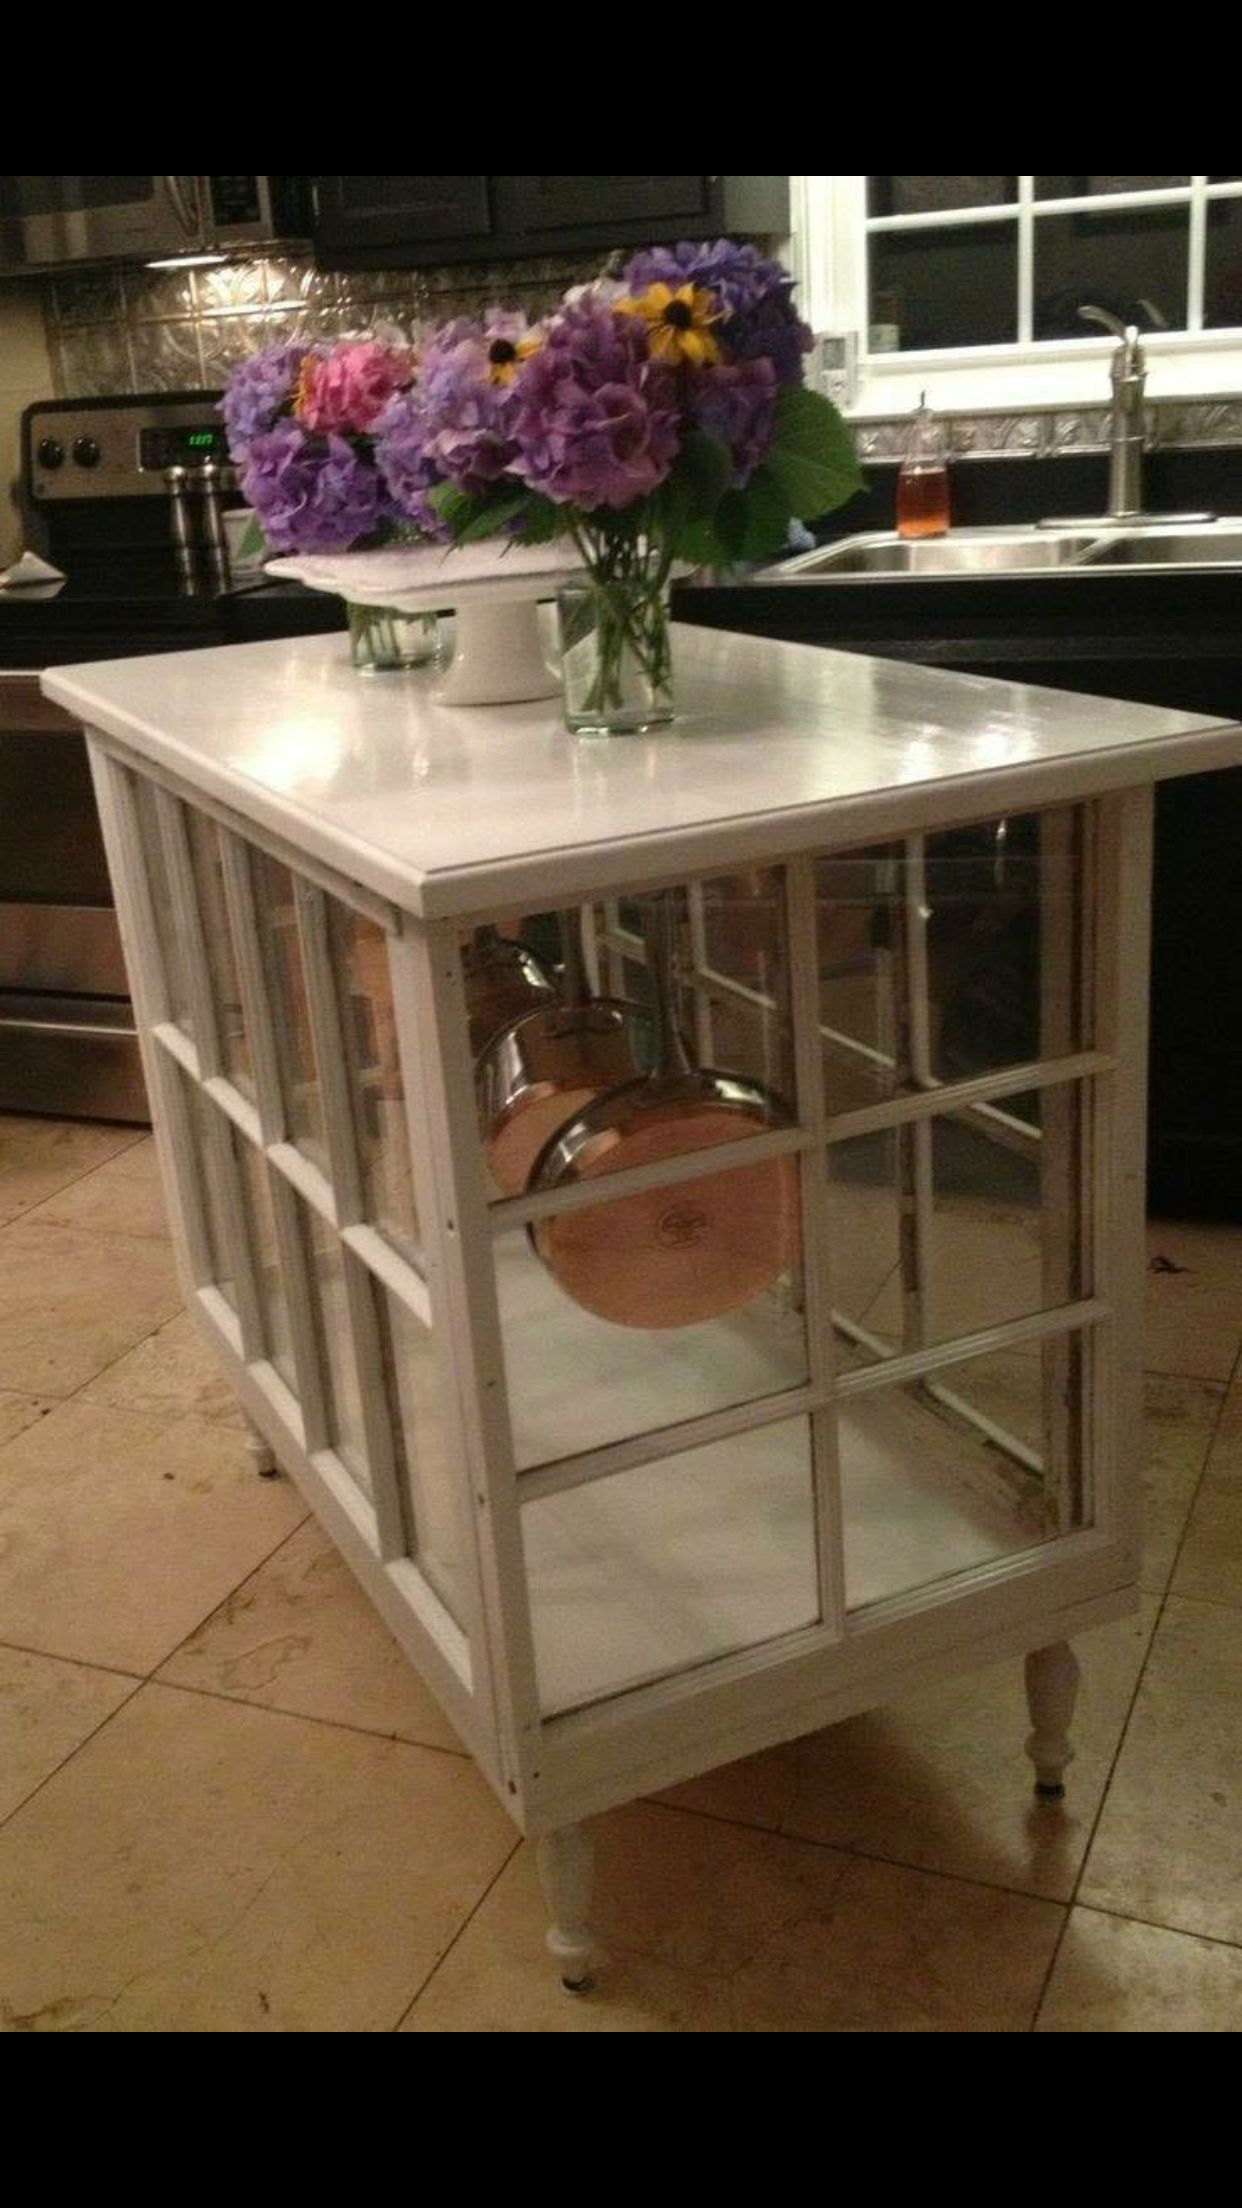 pin by carol tucker on build projects rustic kitchen island portable kitchen island antique on kitchen island ideas kids id=58641